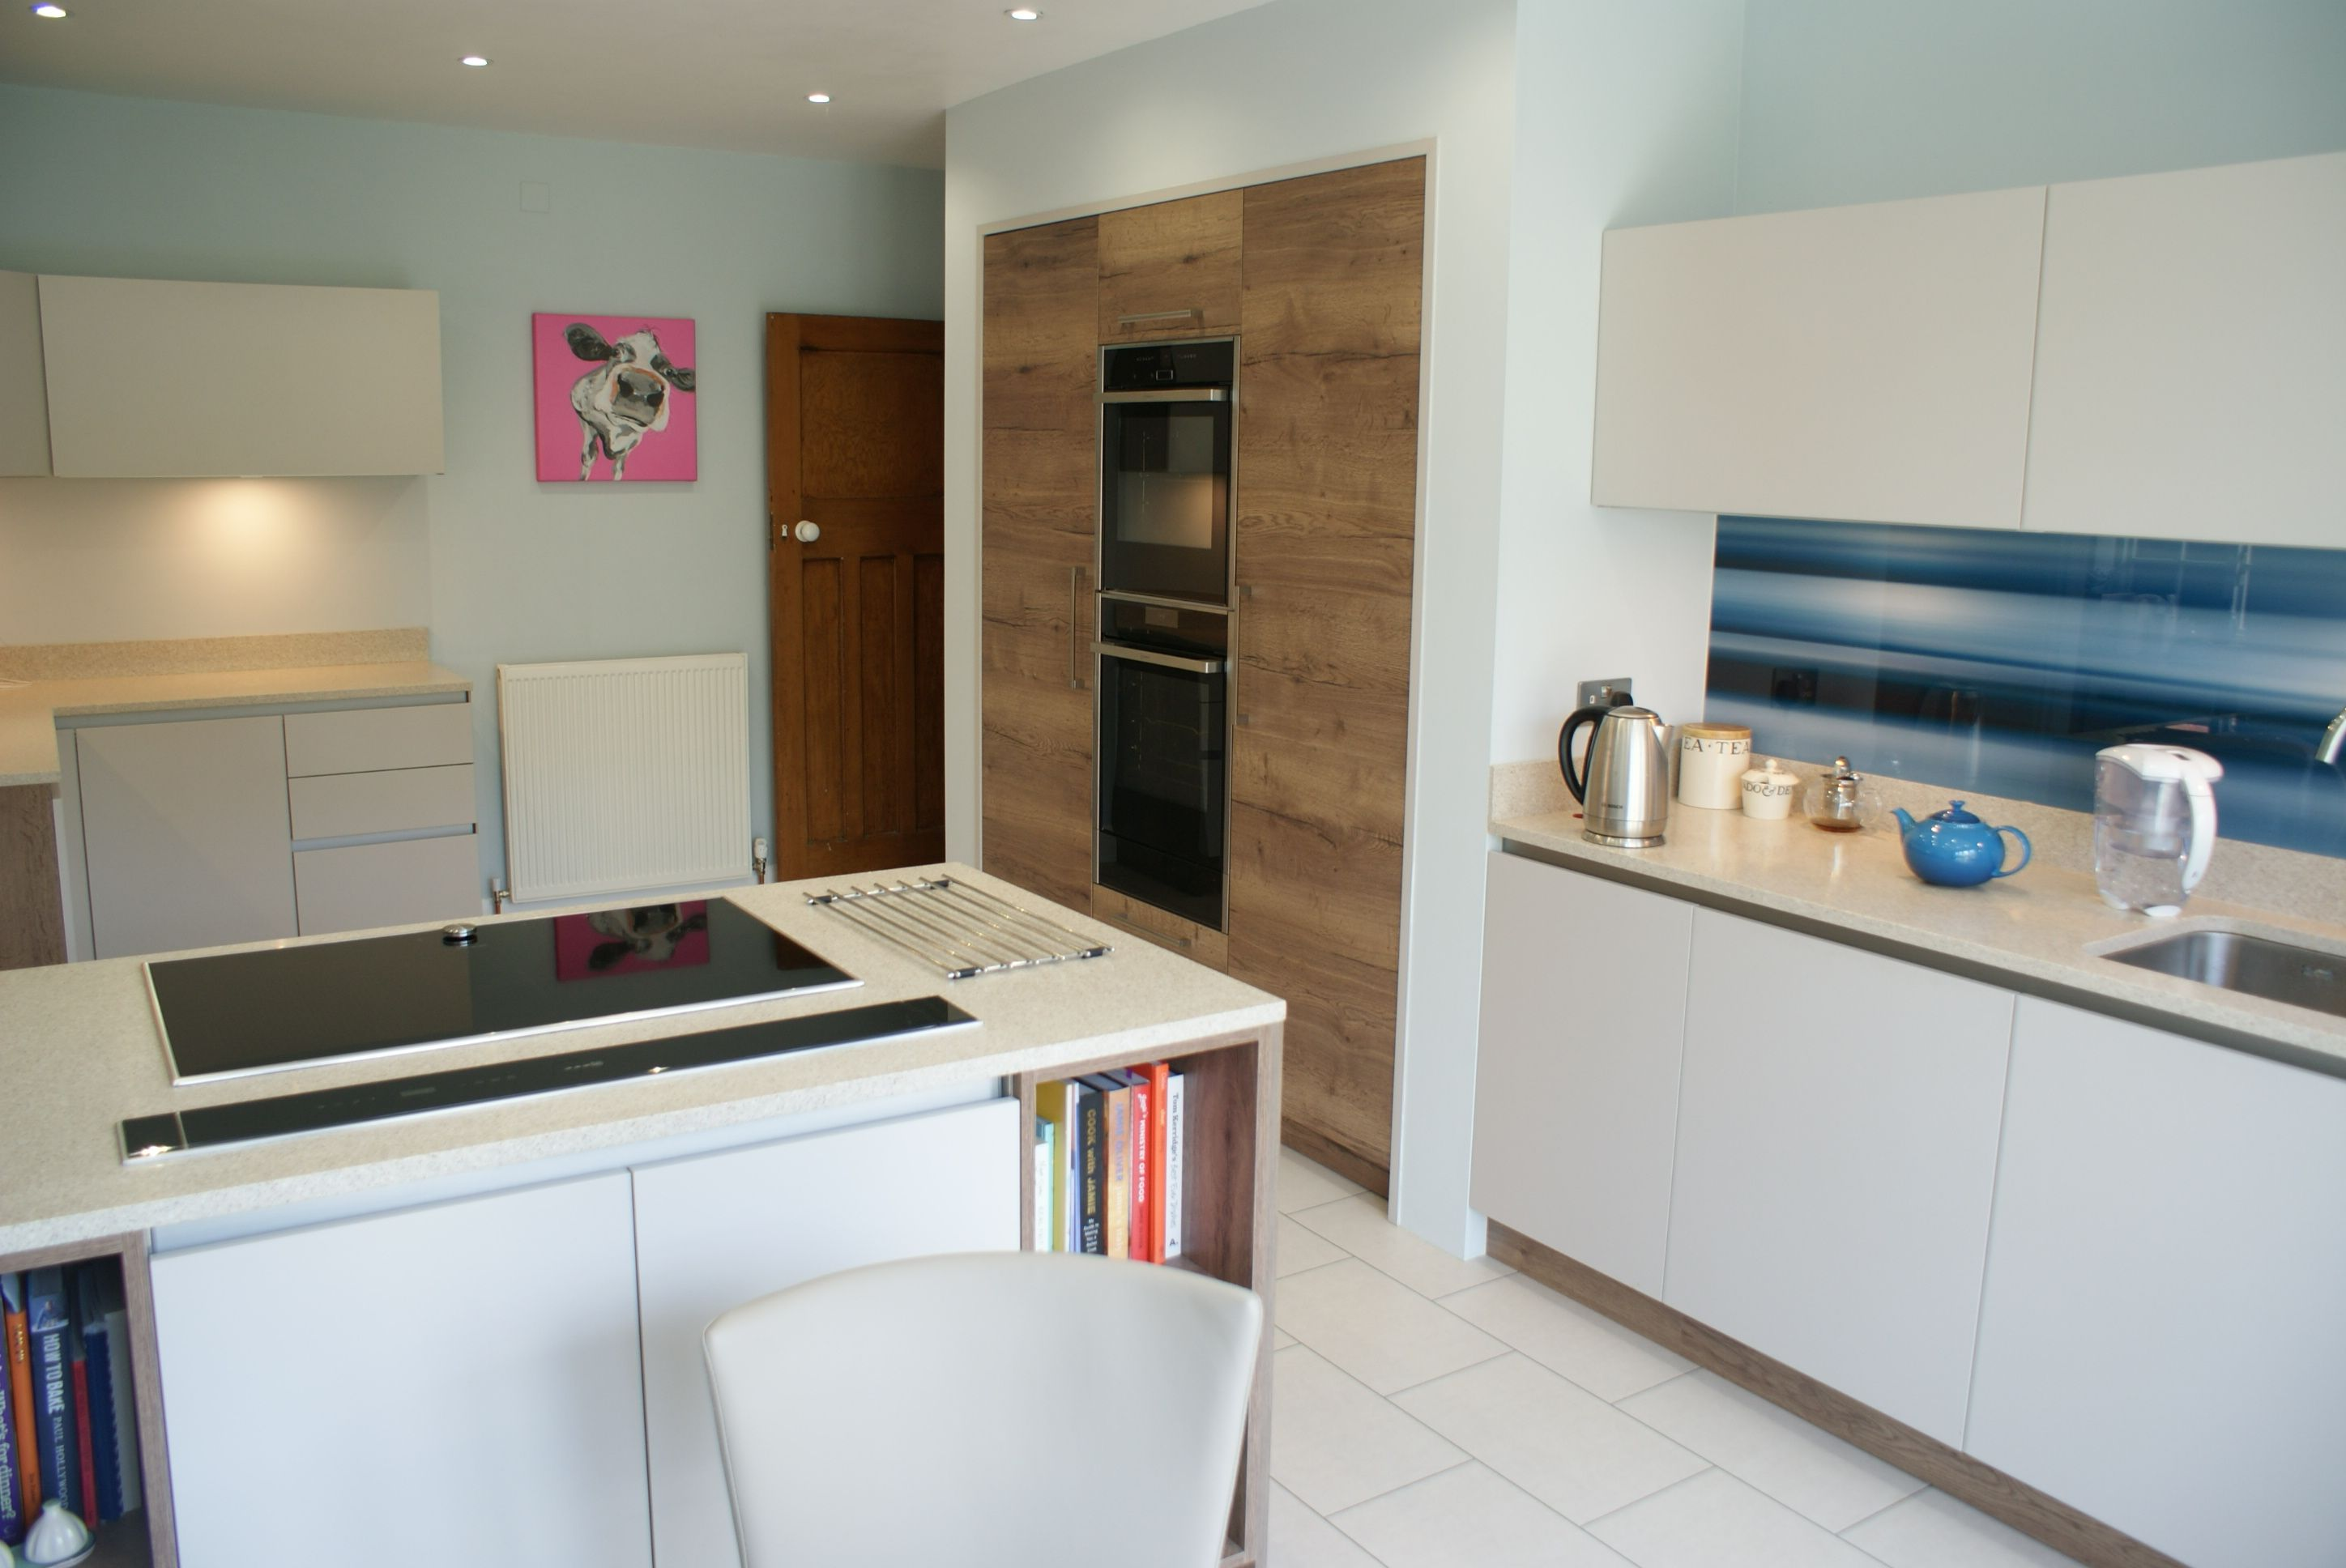 Fusion Linear Kitchen In Smooth Painted Cashmere / Halifax Tobacco Oak By  Saffron Interiors Of Guildford